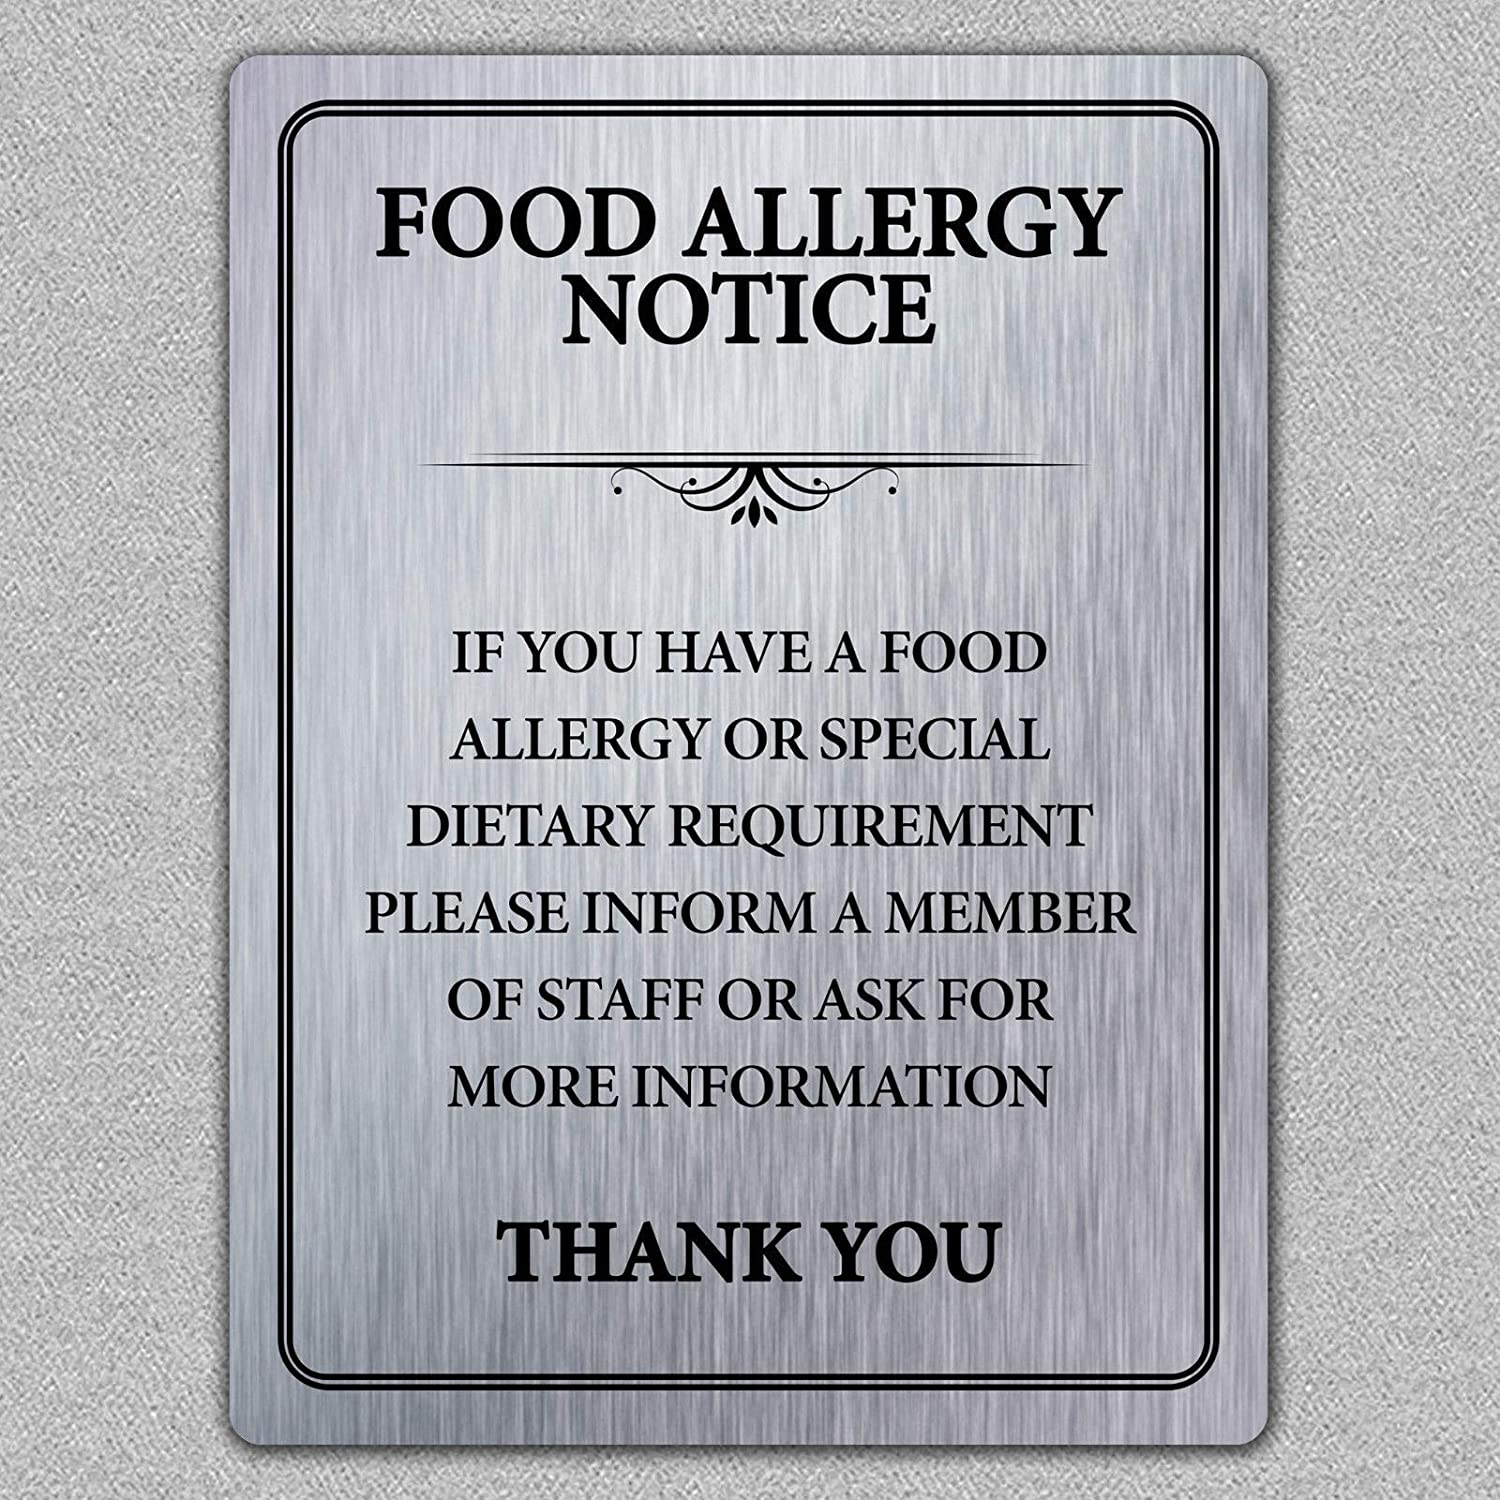 Food Allergy Safety Notice Tin Sign Metal Sign TIN Sign 7.8X11.8 INCH